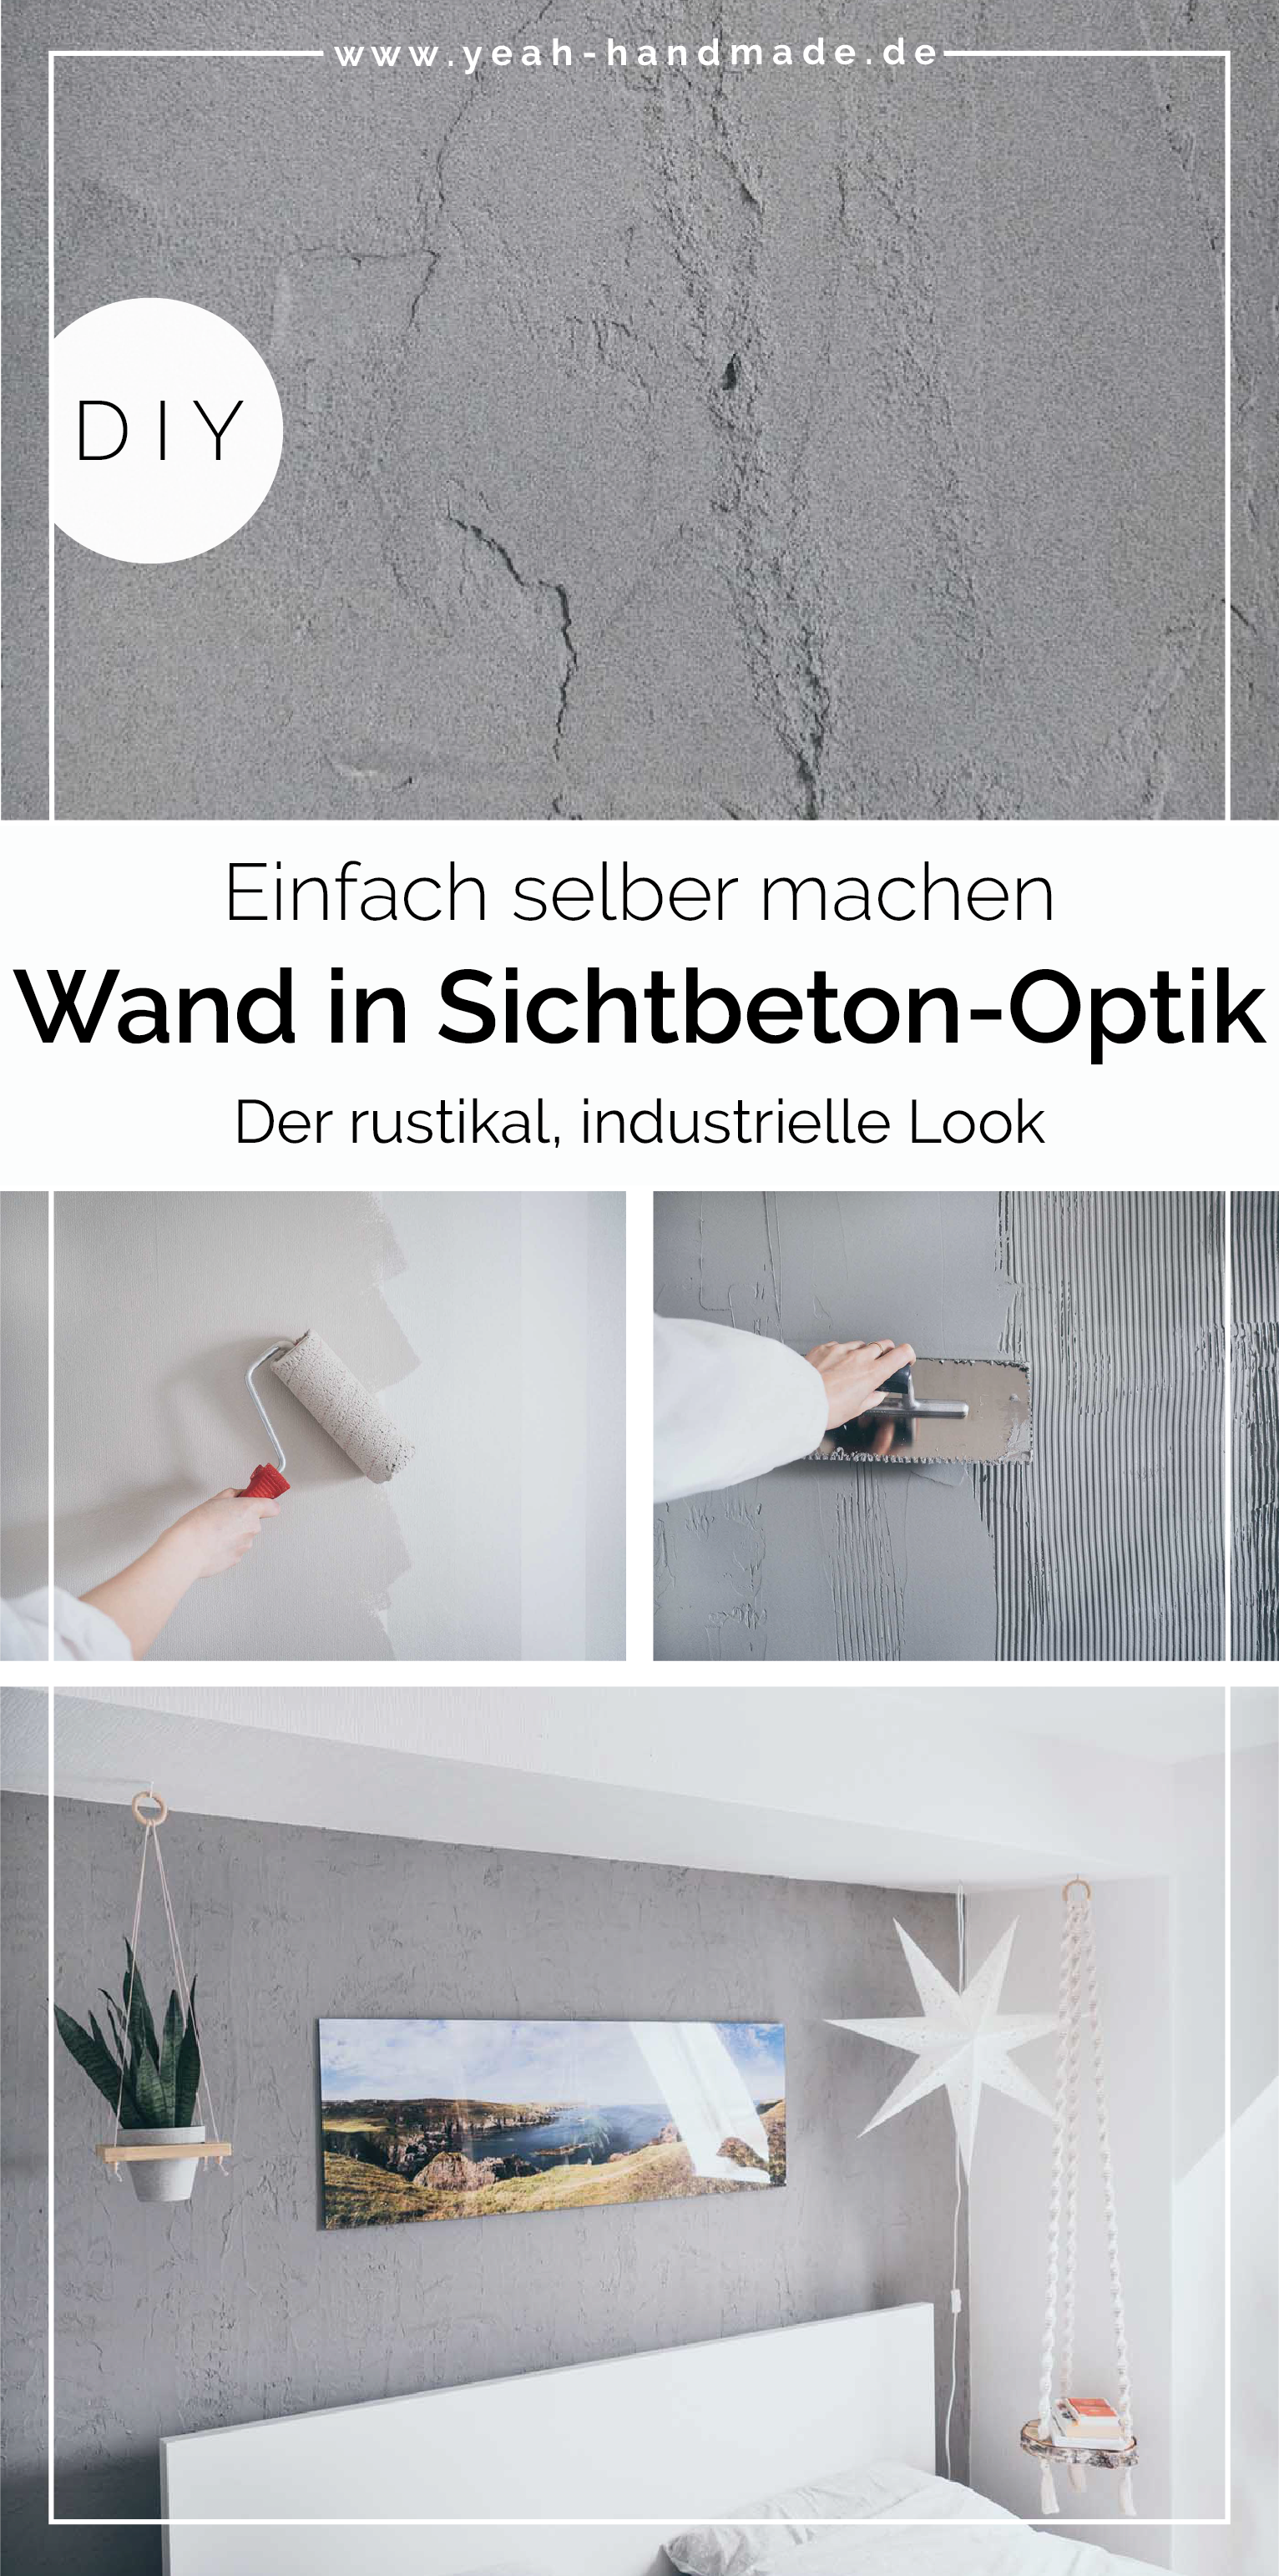 Wand In Sichtbeton Optik Selber Machen In 2020 Diy Wand Sichtbeton Betonwand